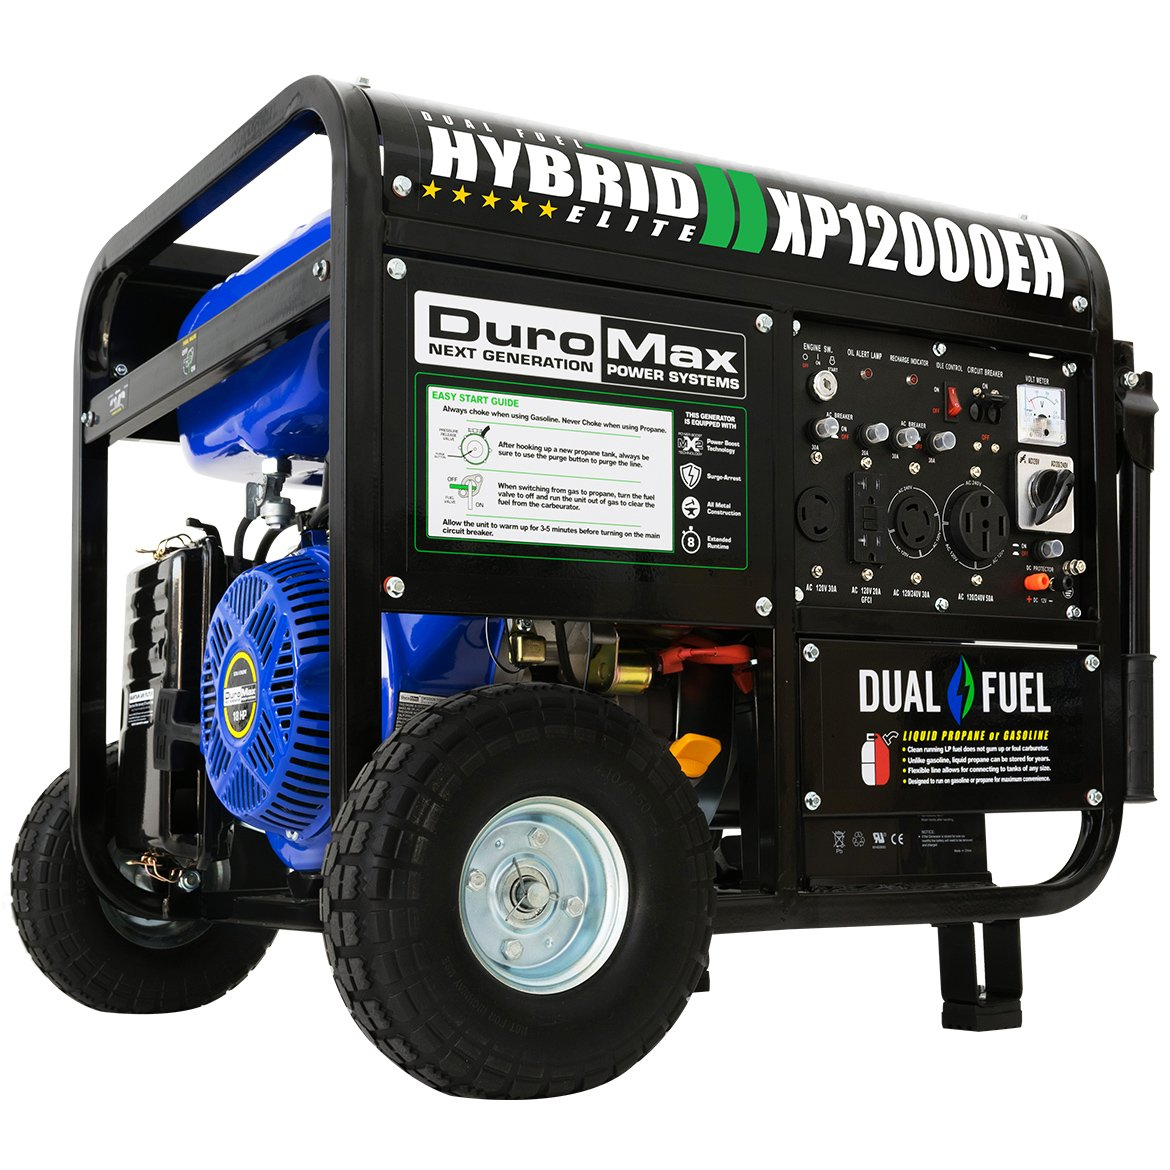 Amazon.com: DuroMax Hybrid Dual Fuel XP12000EH 12,000-Watt Portable  Generator: Garden & Outdoor